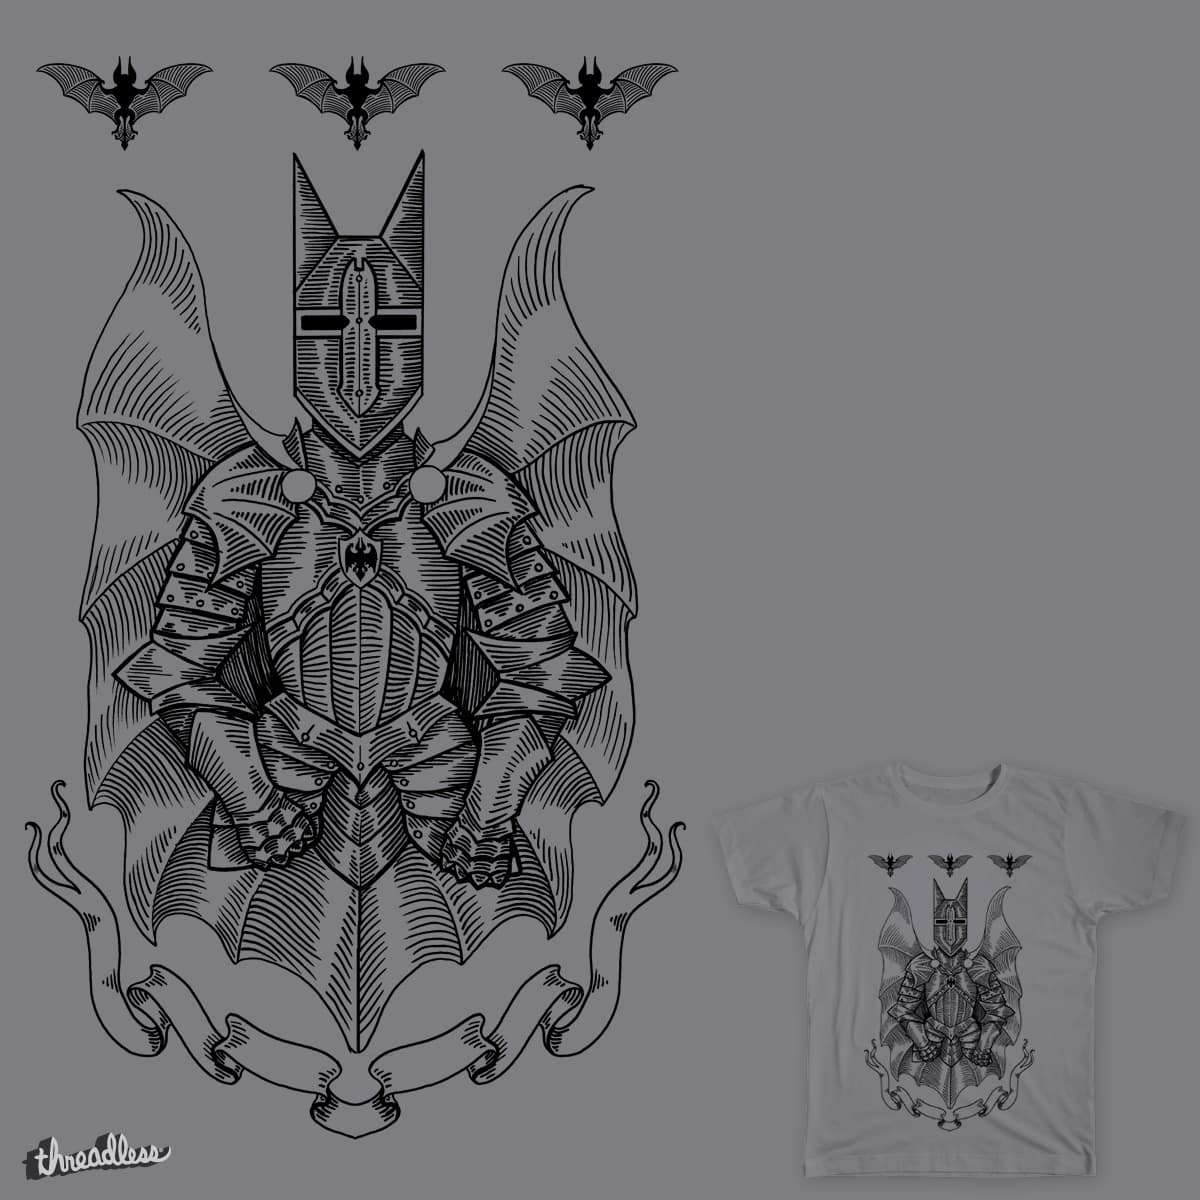 The Old Dark Knight by Verreaux on Threadless